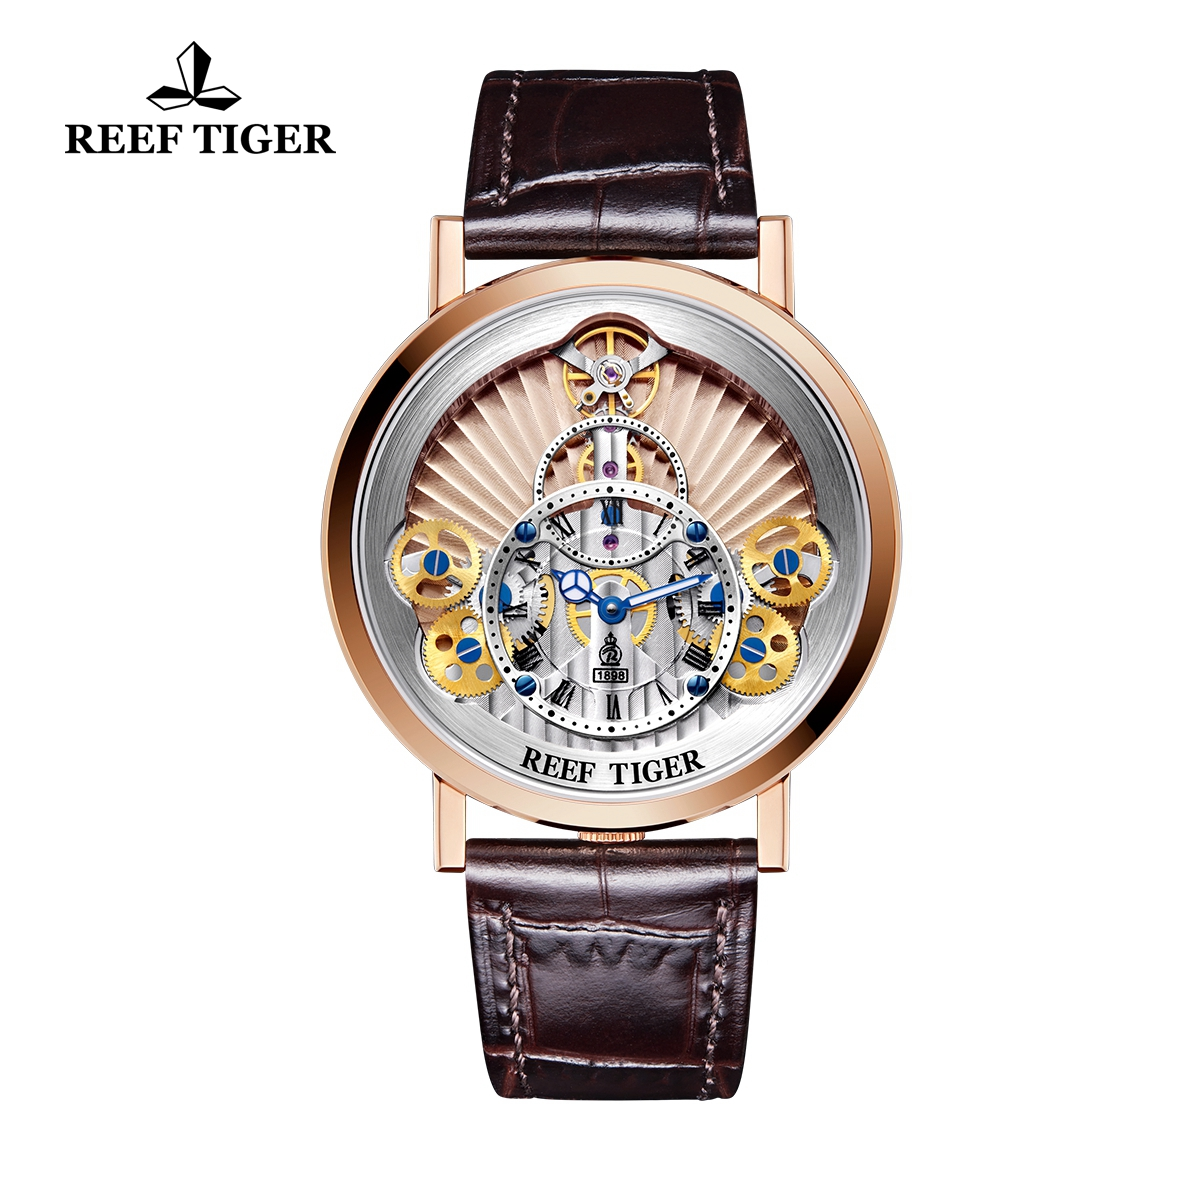 Reef Tiger Artist Rotation Men's Luxury Rose Gold Casual Watches Brown Leather Strap Quartz Watch RGA1958-PPS